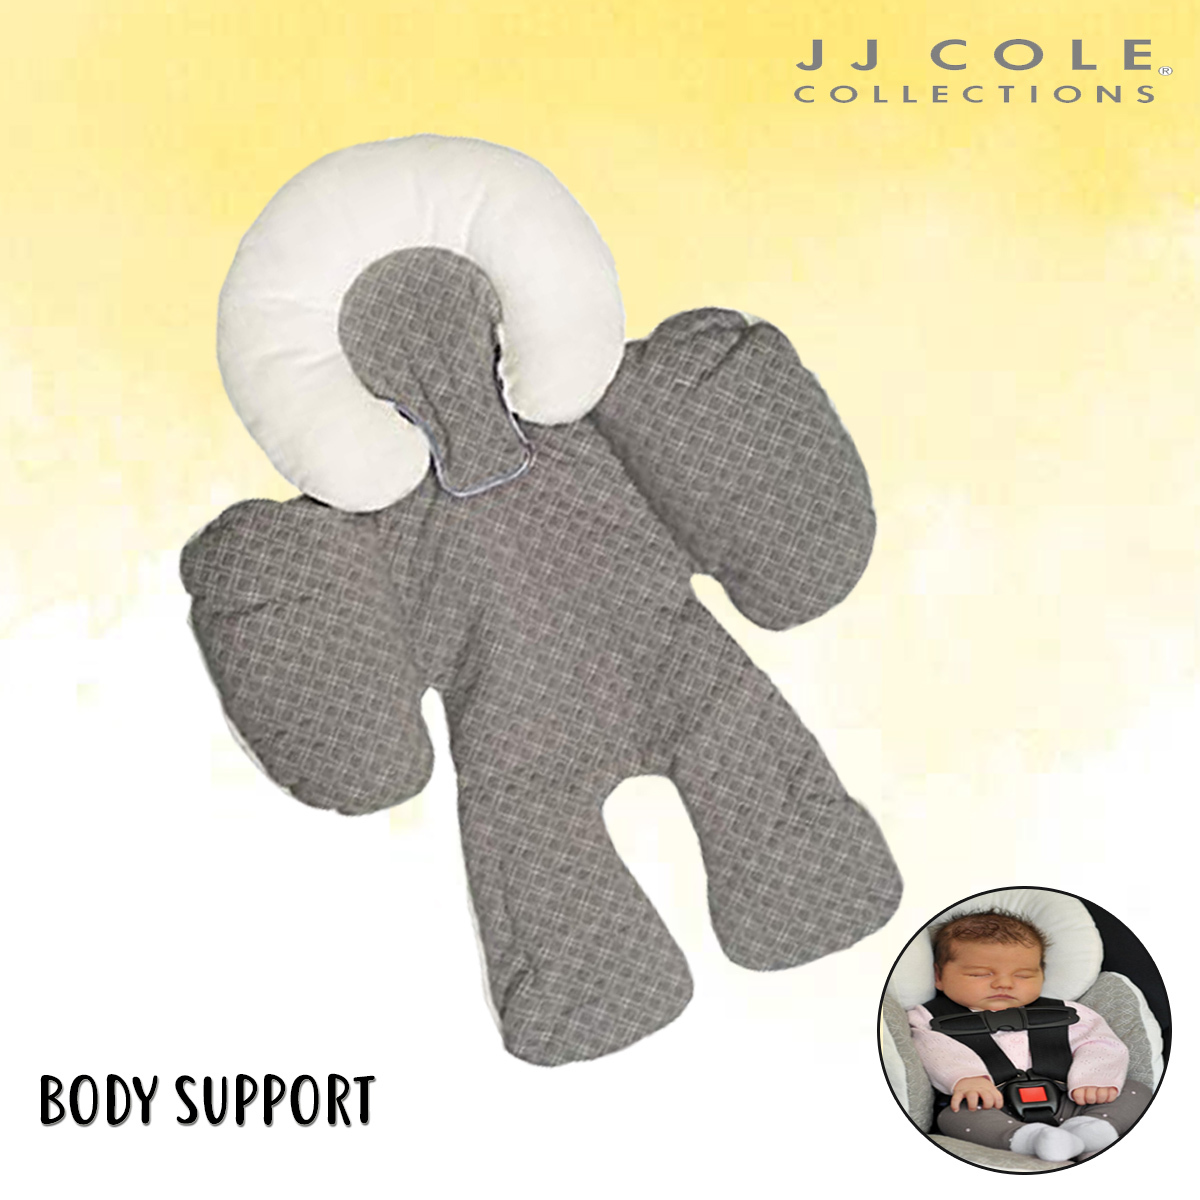 JJ COLE BODY SUPPORT(grey).jpg